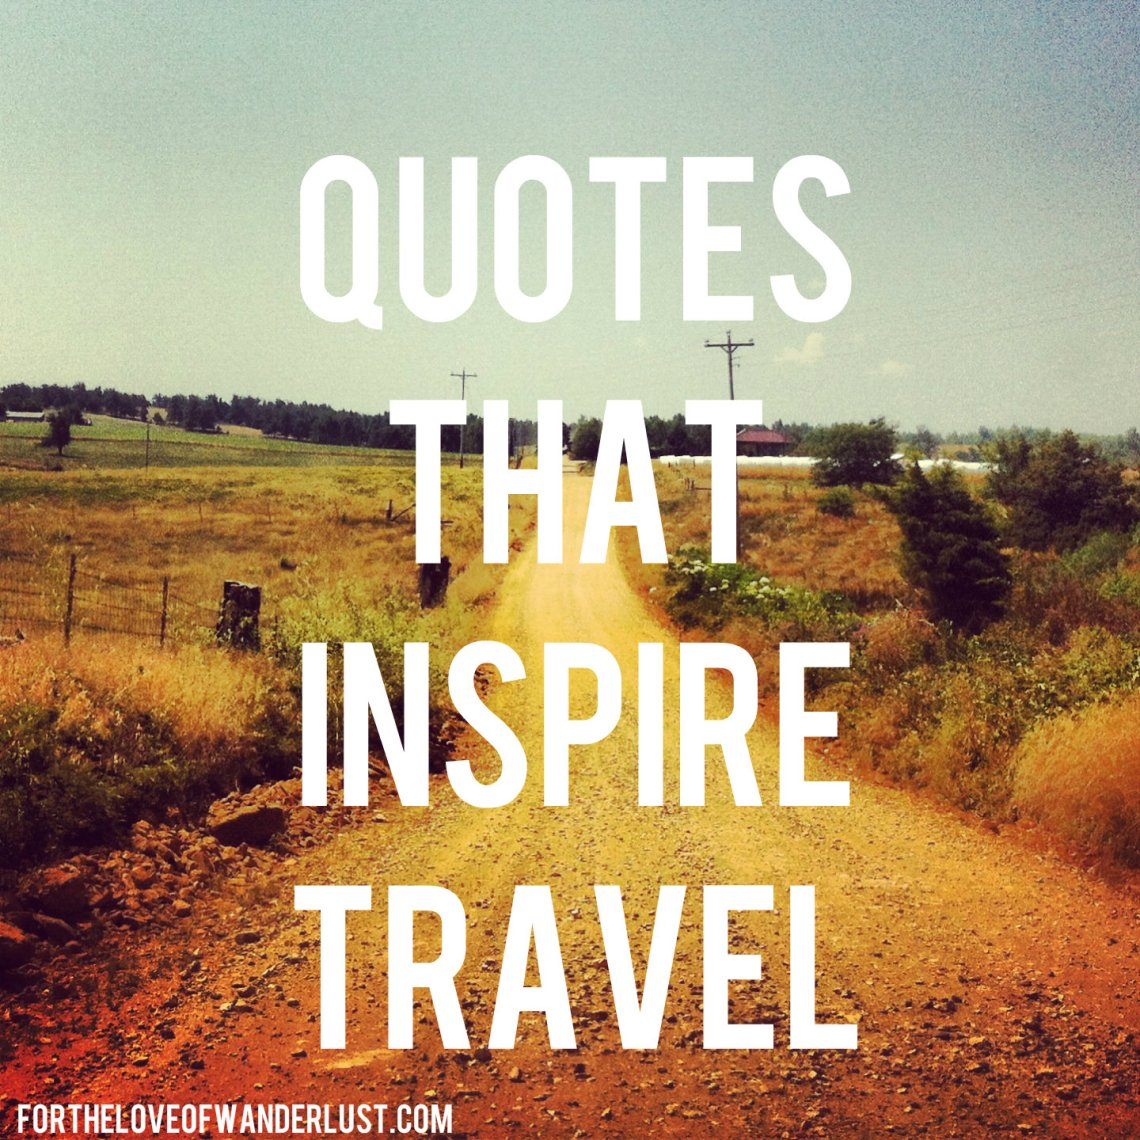 Quotes That Inspire Wanderlust Wednesday Quotes That Inspire Travel Part Three  For